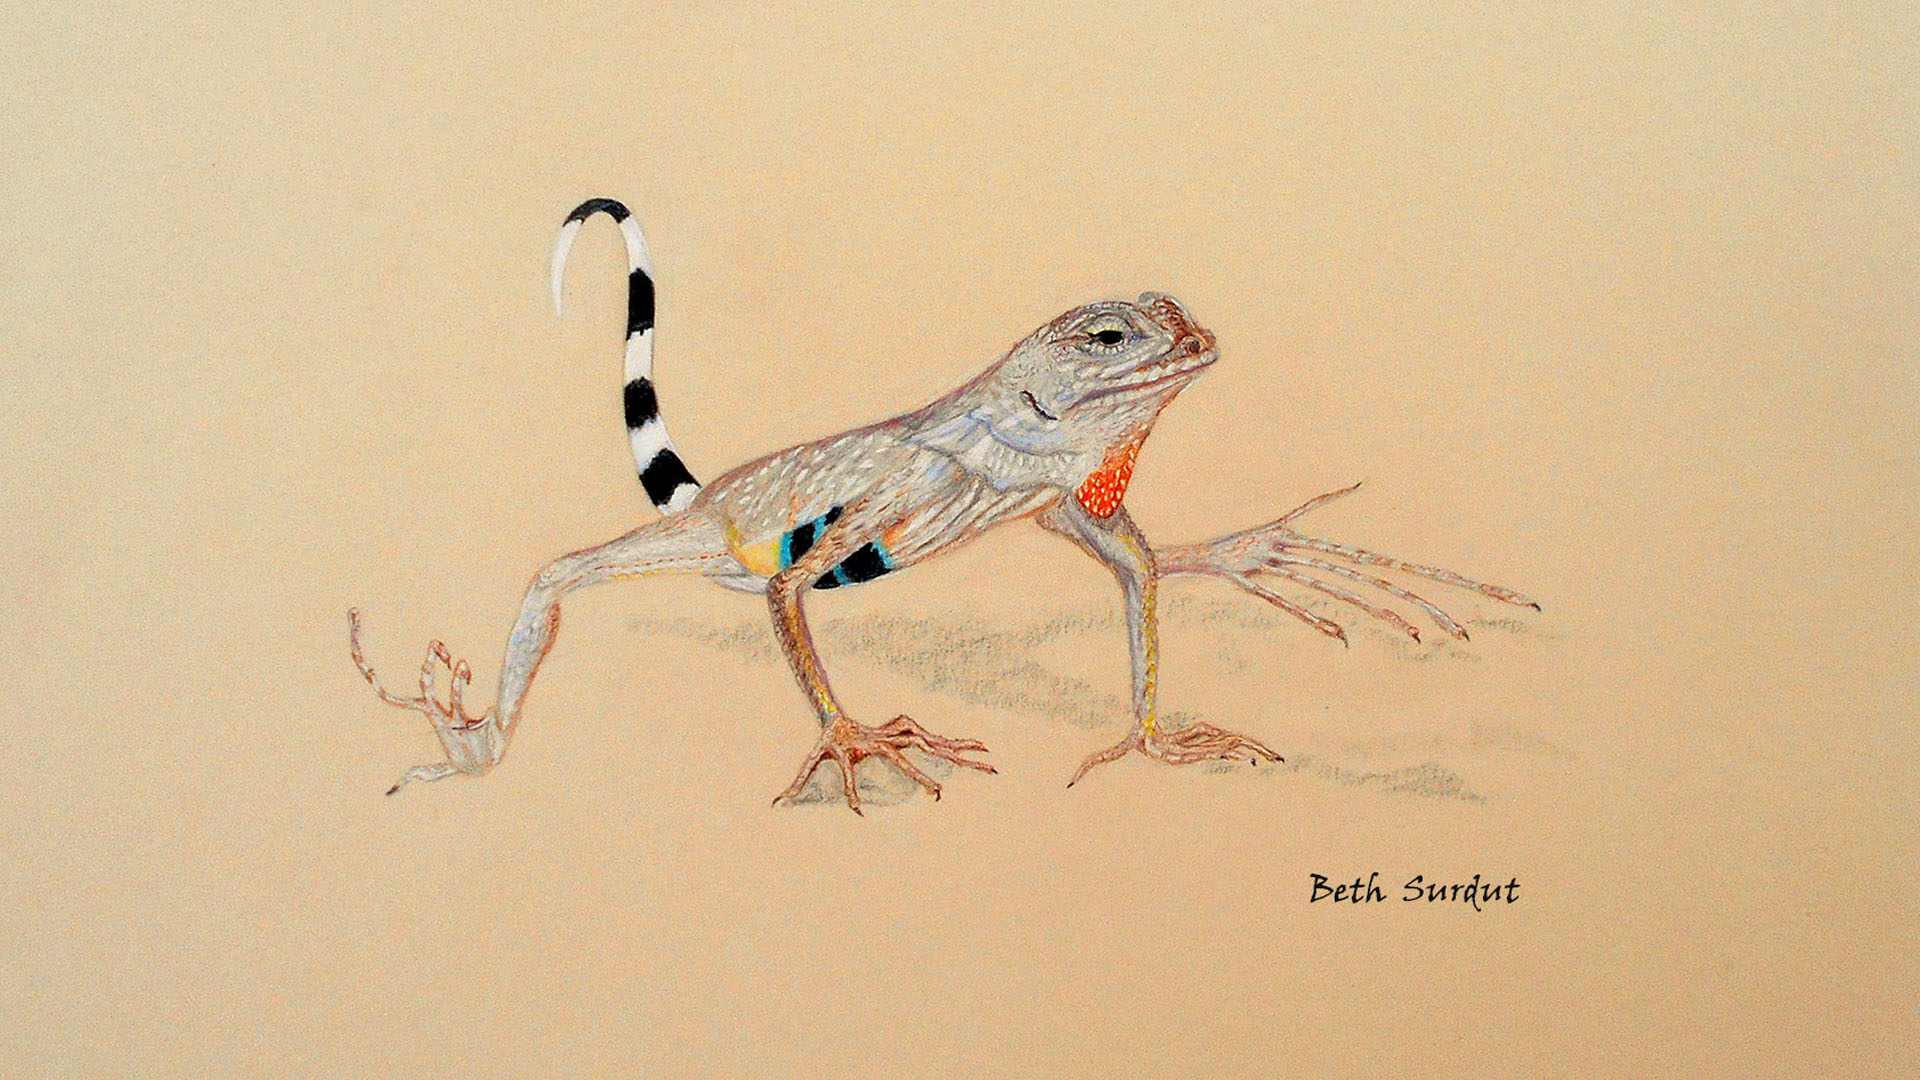 beth surdut zebra tailed lizard illustration hero